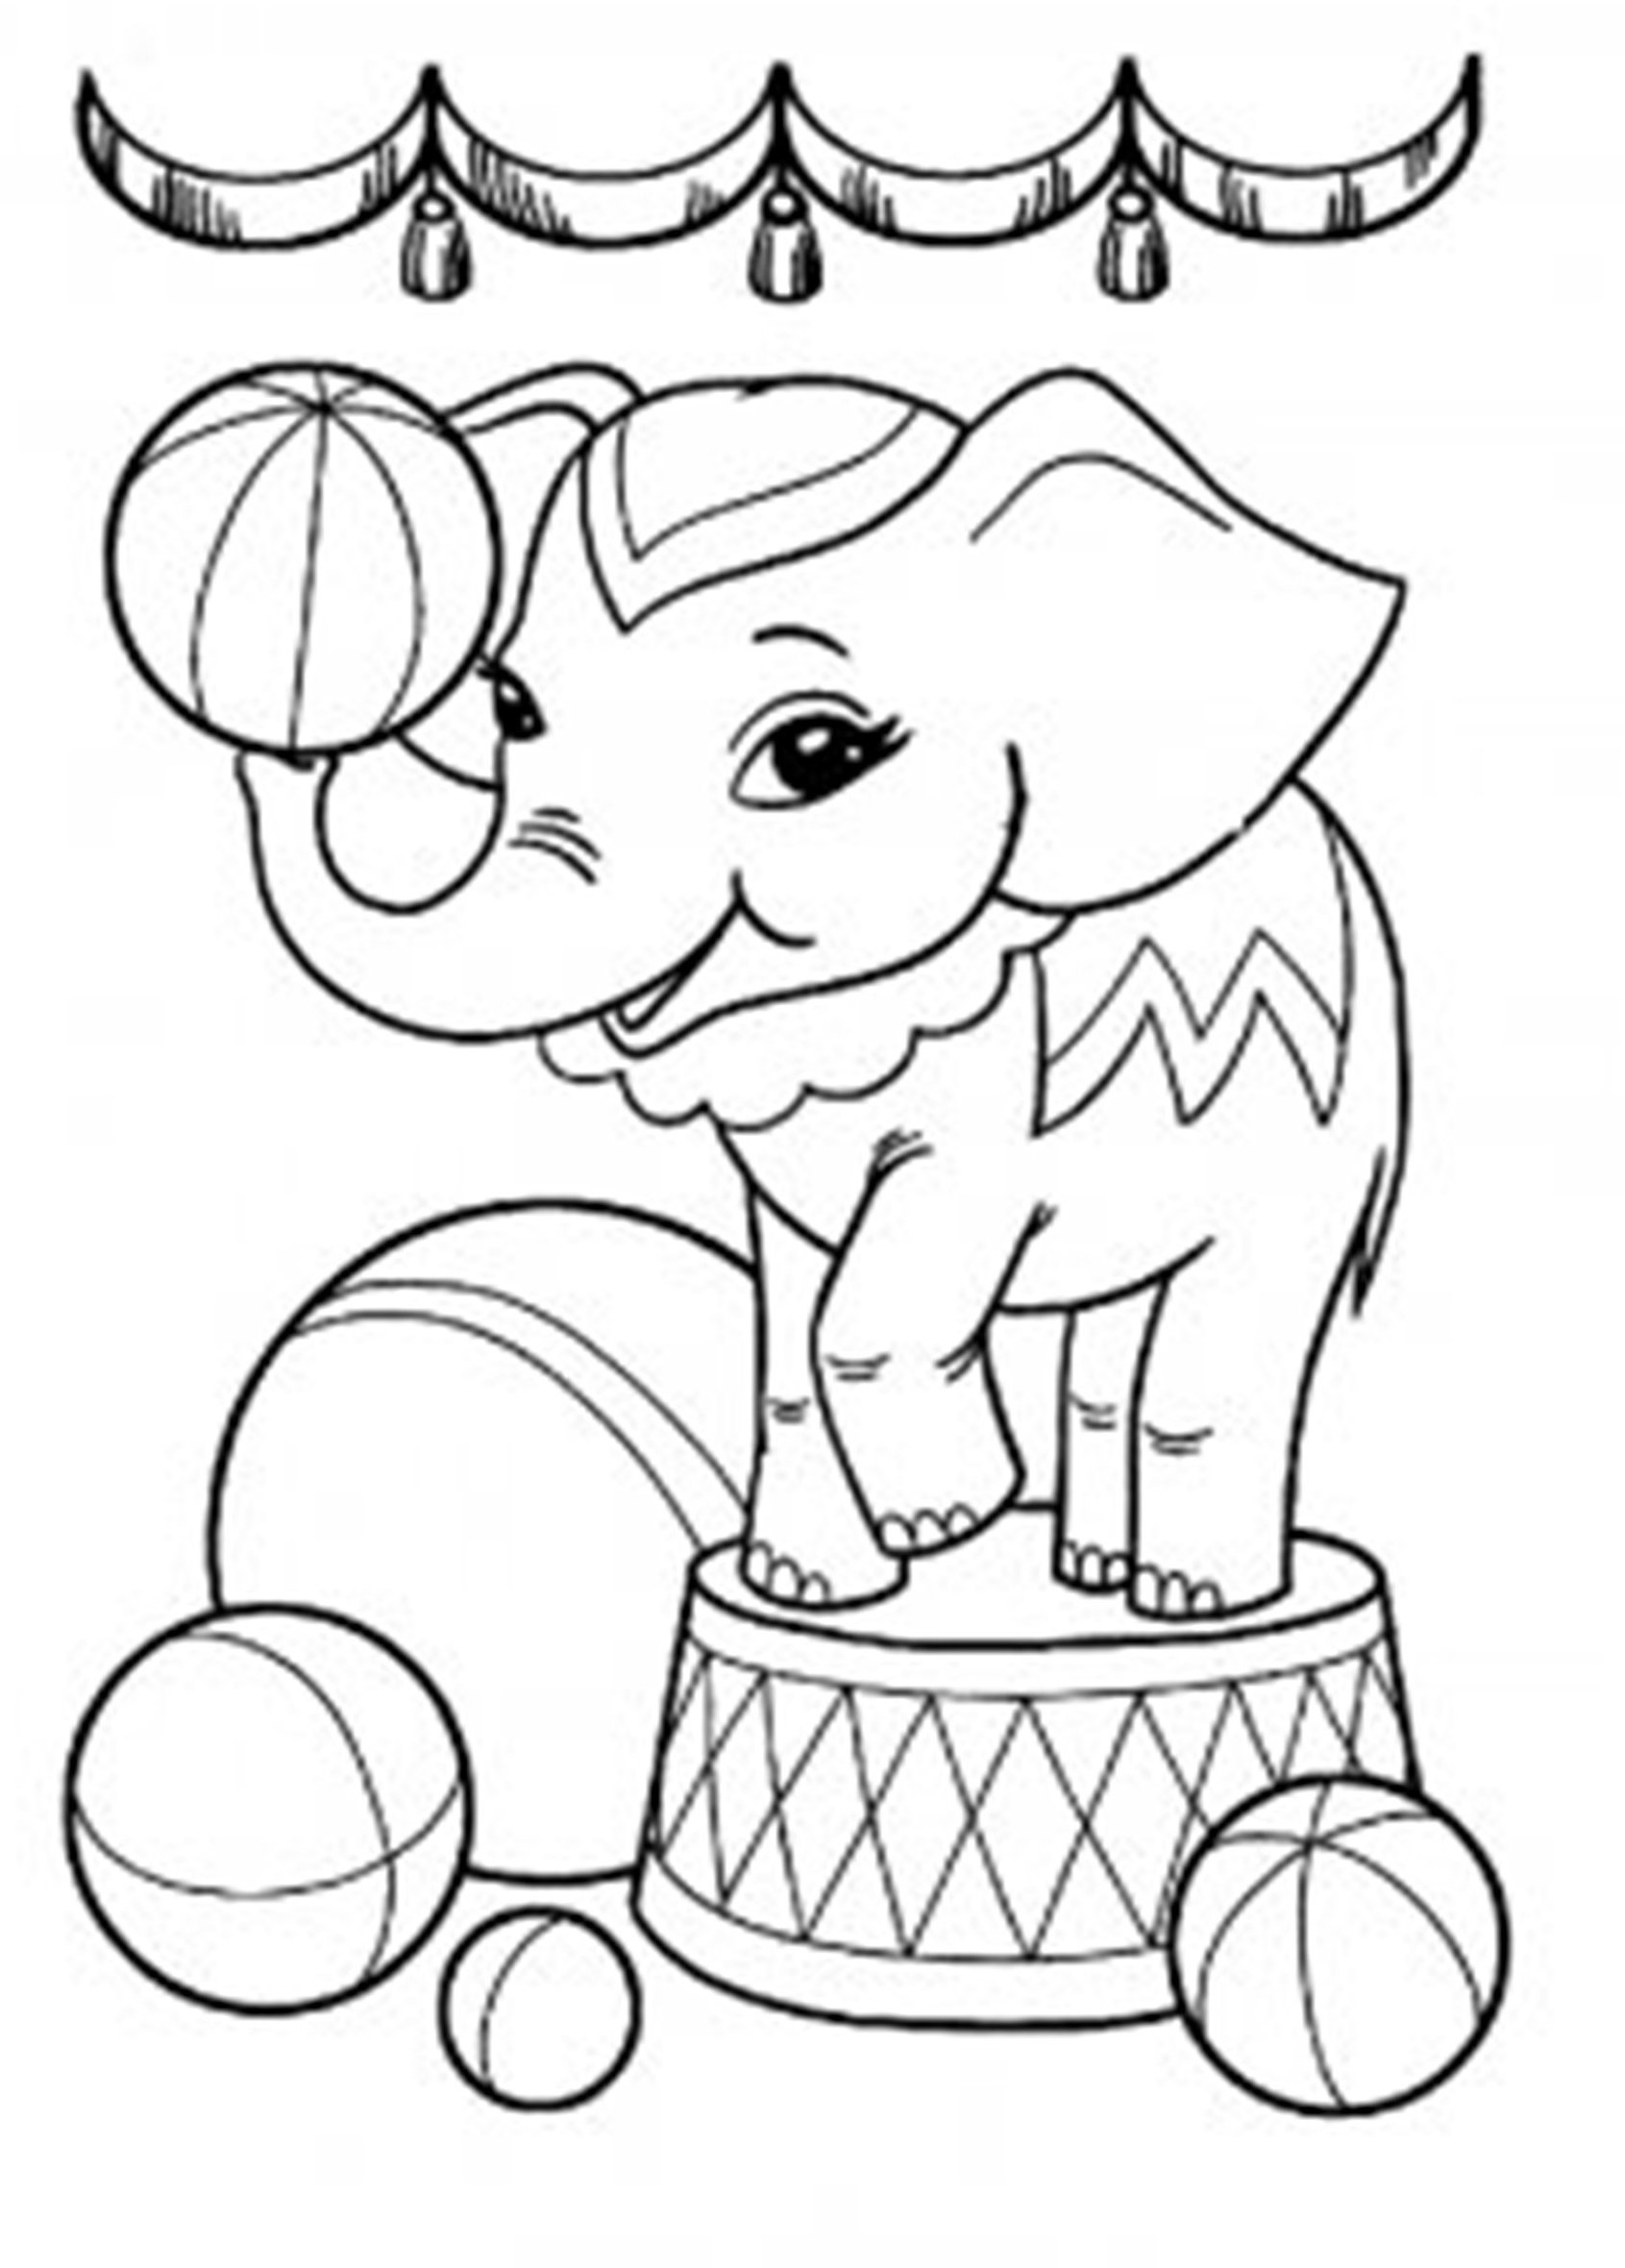 coloring pics of elephant elephant coloring pages for kids printable for free elephant of coloring pics